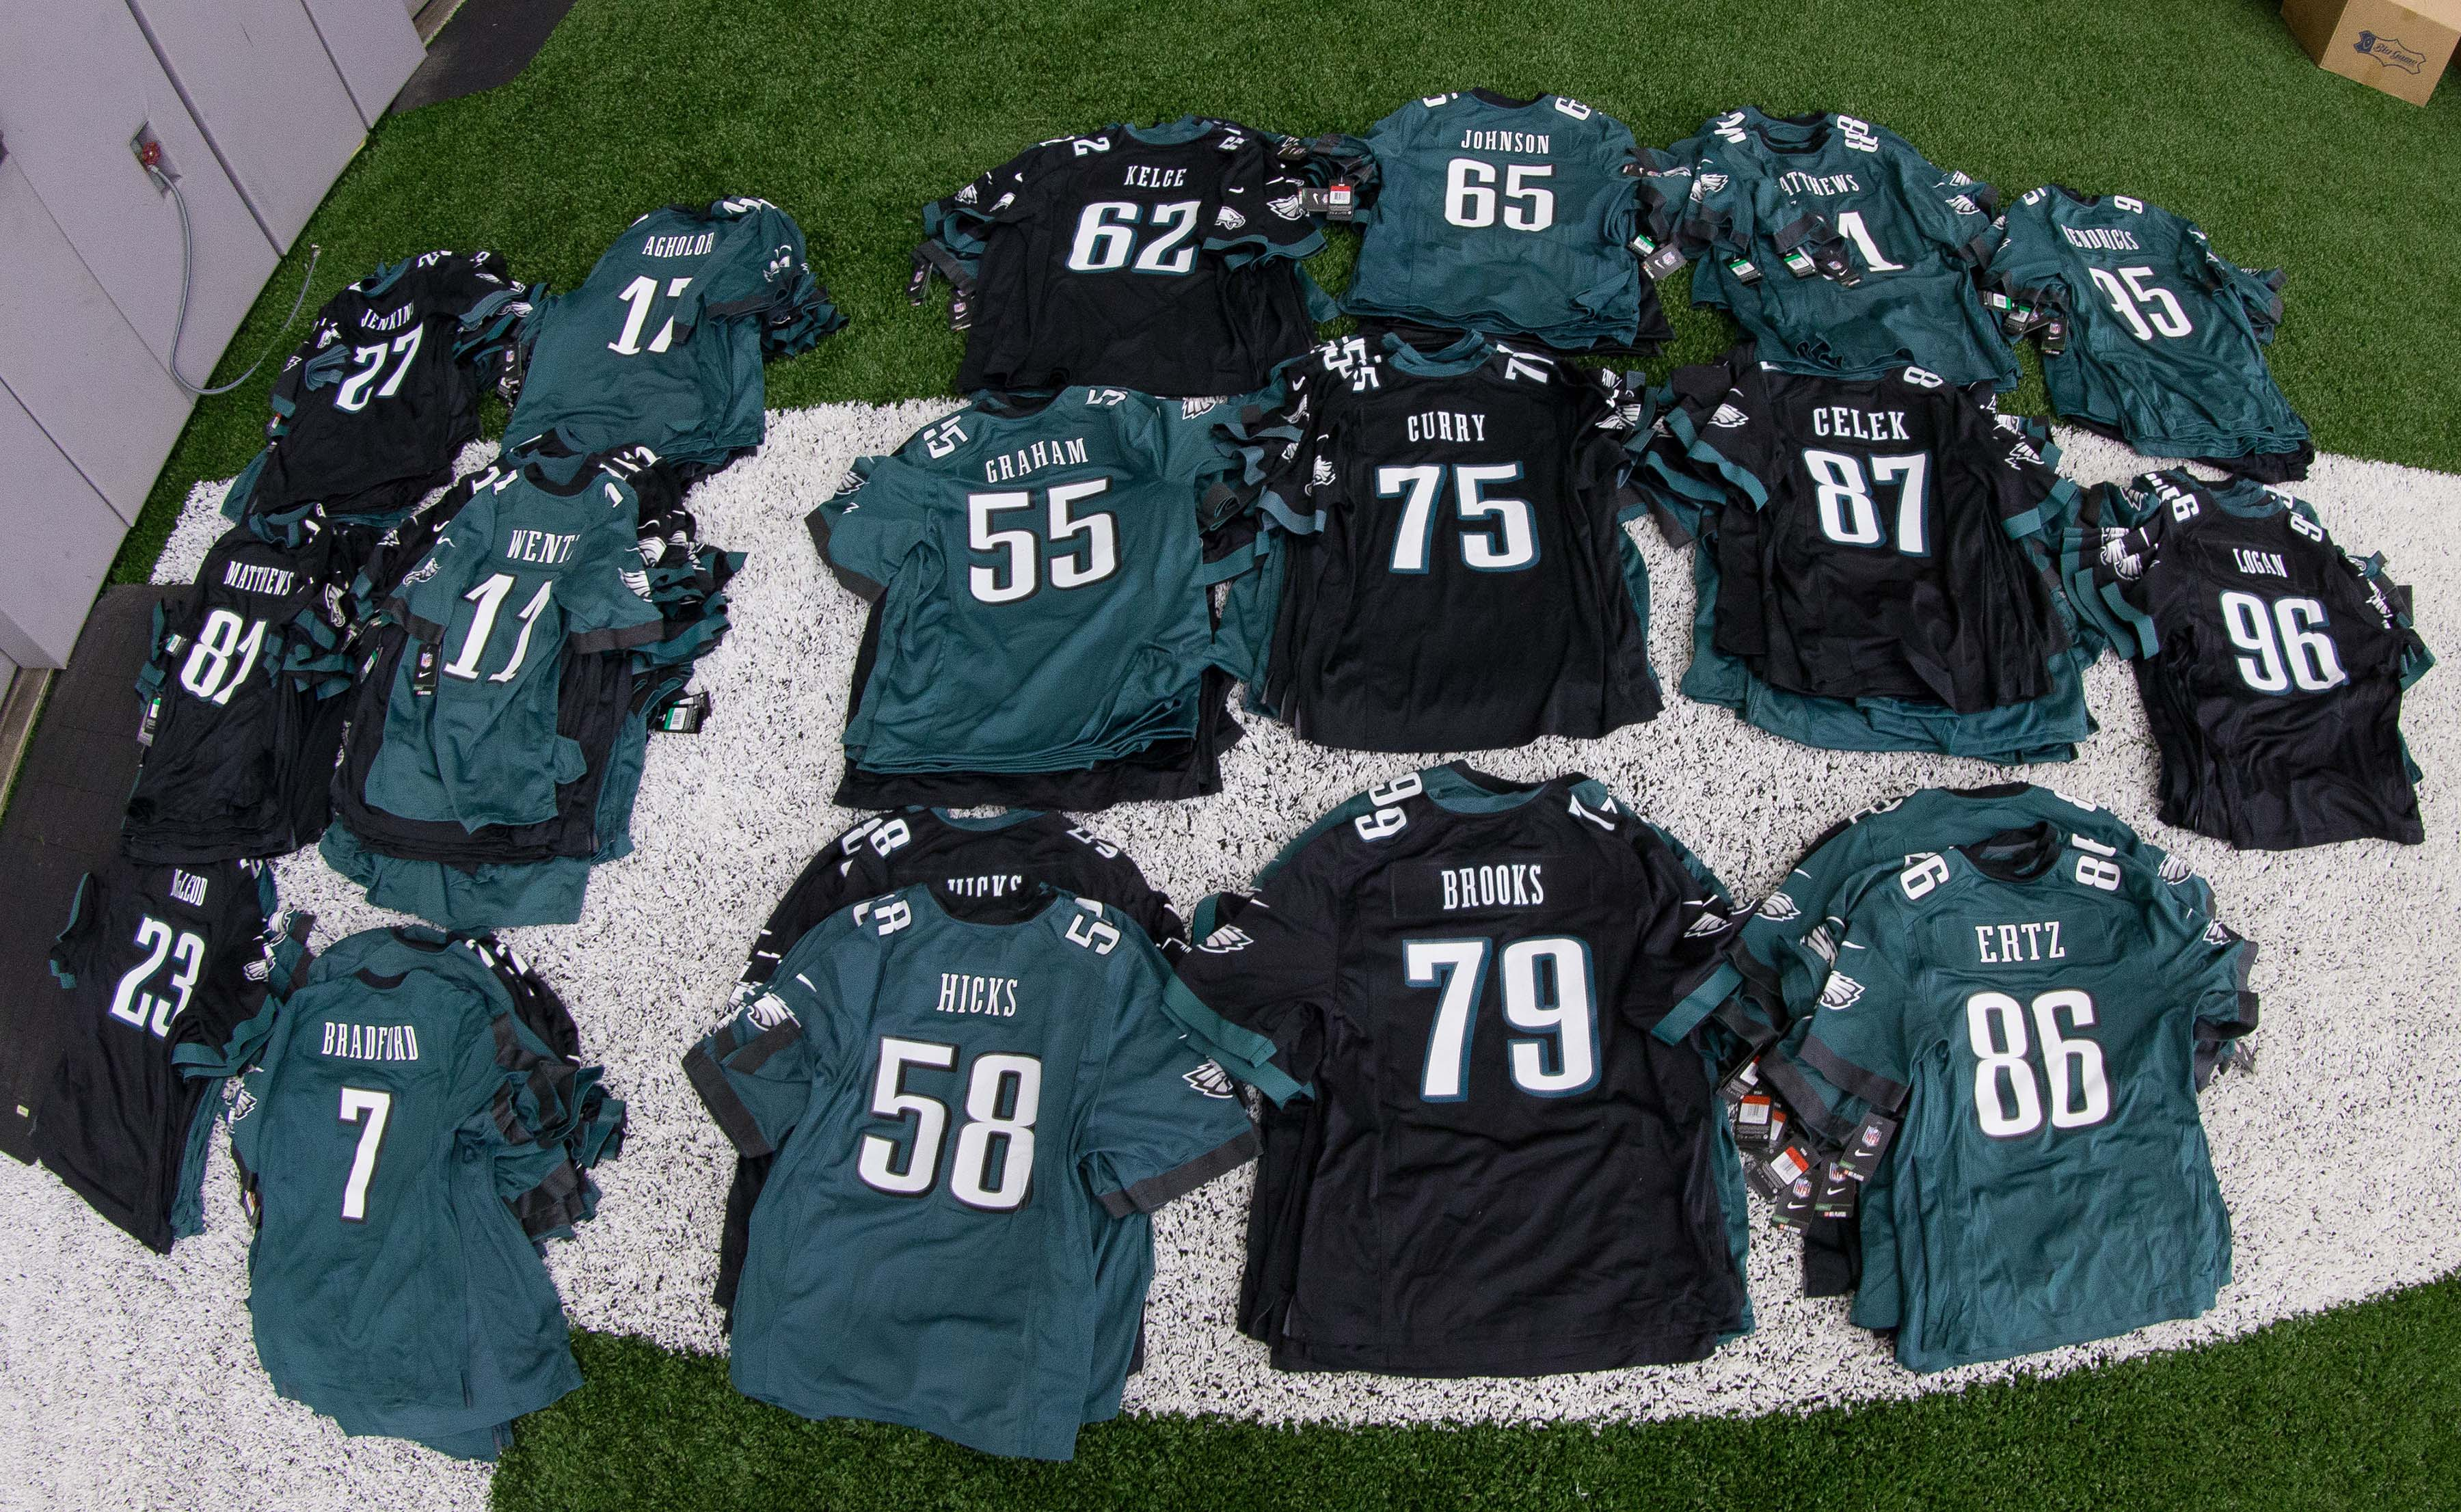 9307515-nfl-philadelphia-eagles-ota